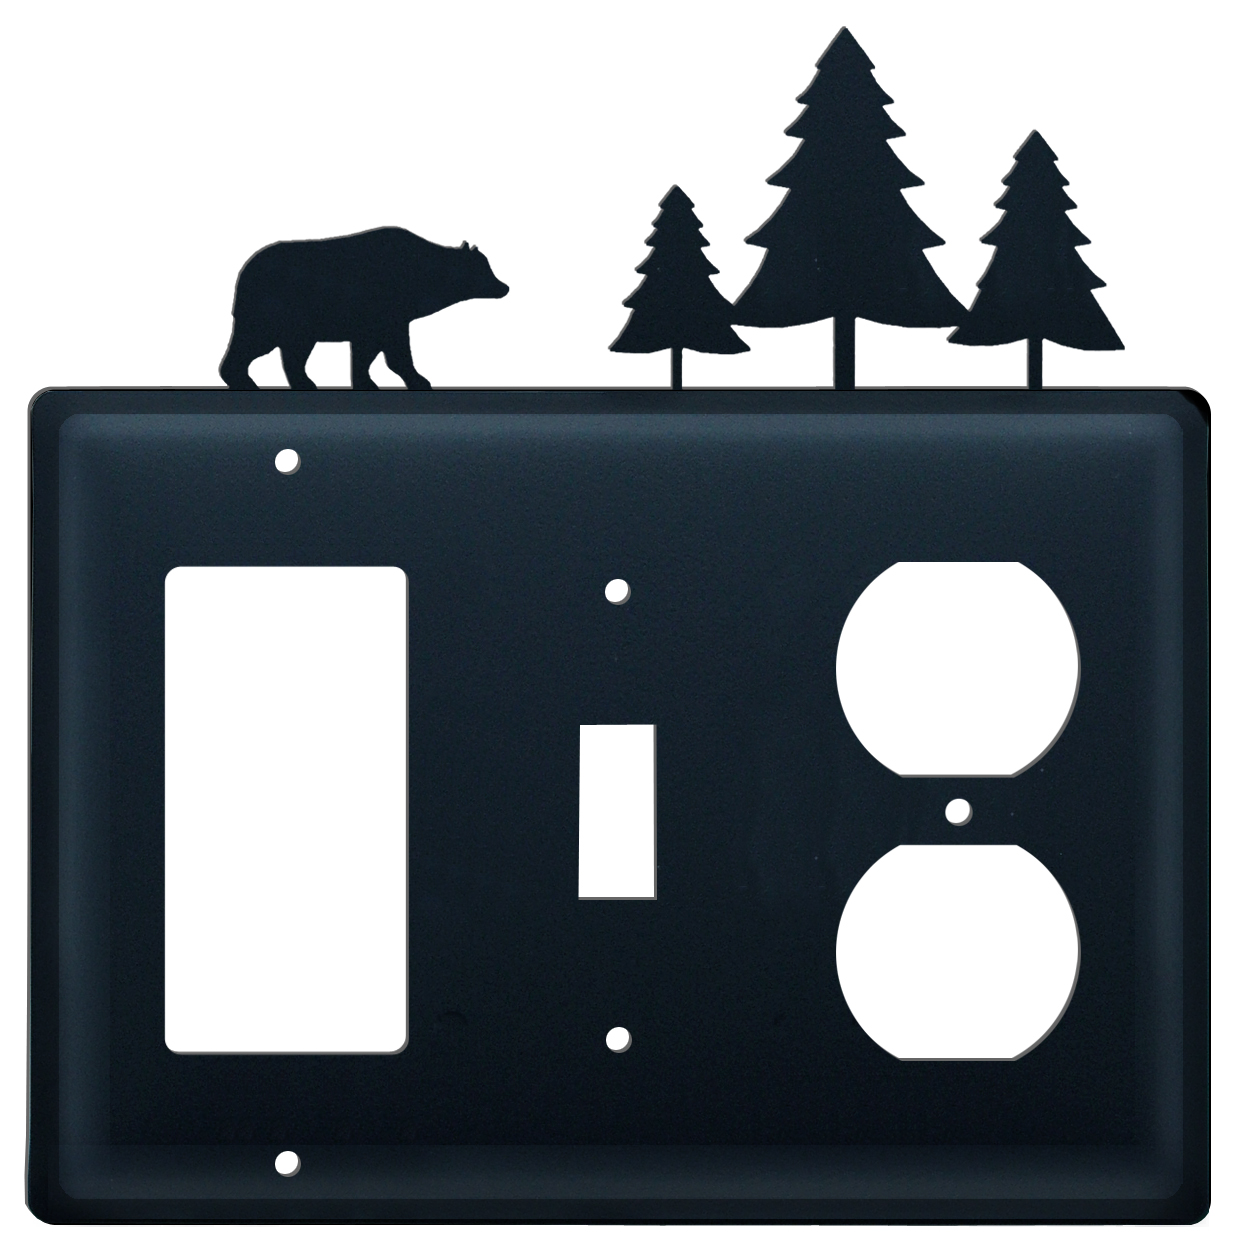 Bear & Pine Trees - Single GFI, Switch and Outlet Cover - CUSTOM Product - If Out Of Stock, Allow 4 to 6 Weeks